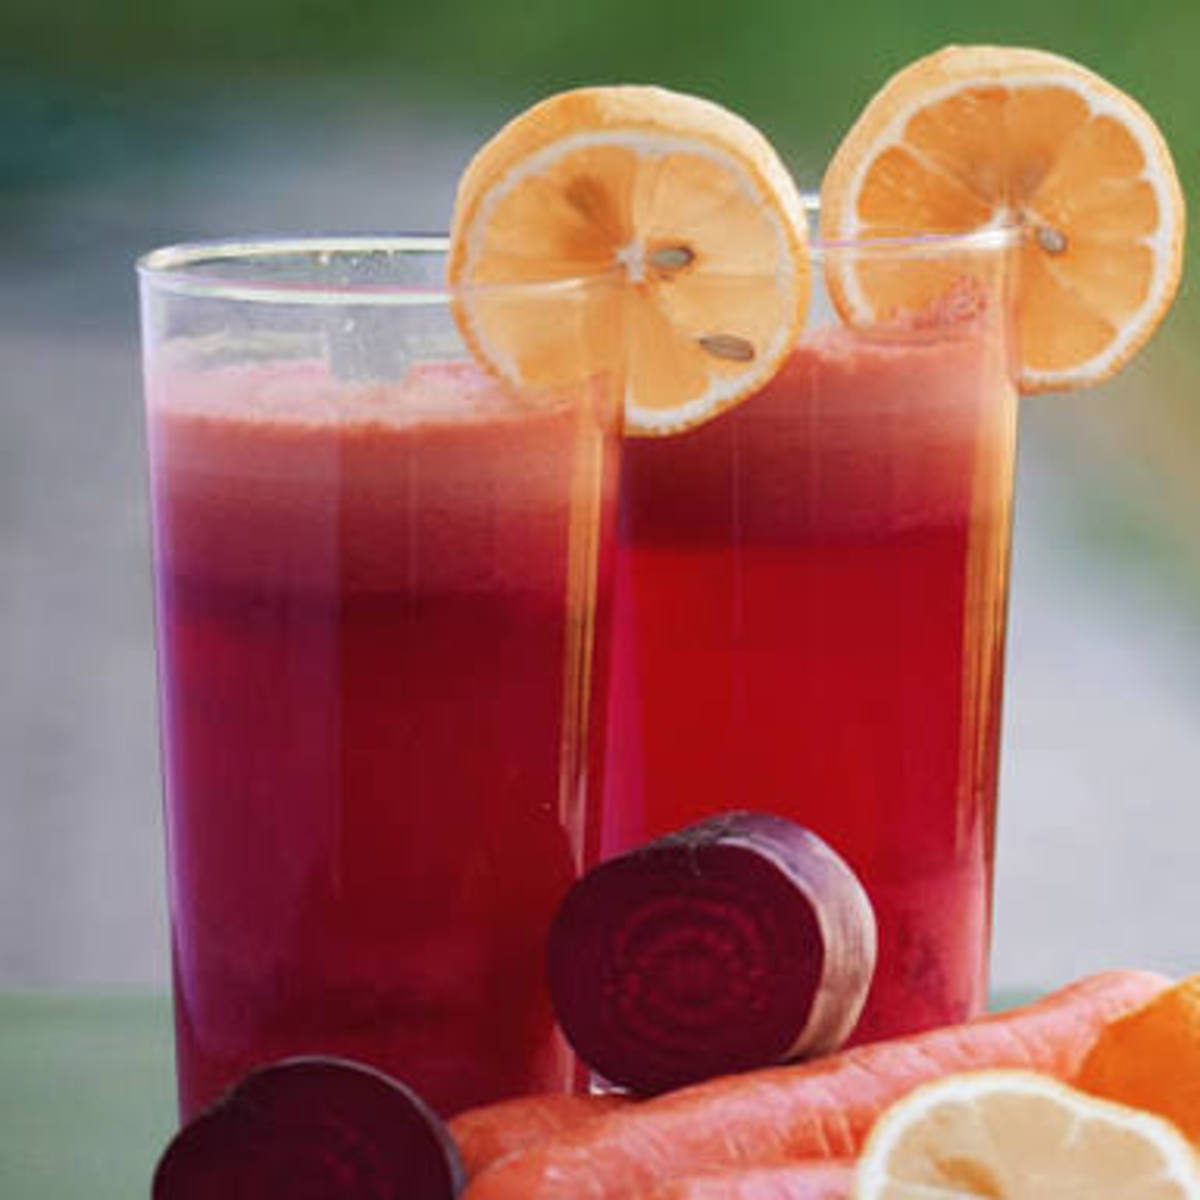 Carrot, beet root mocktail